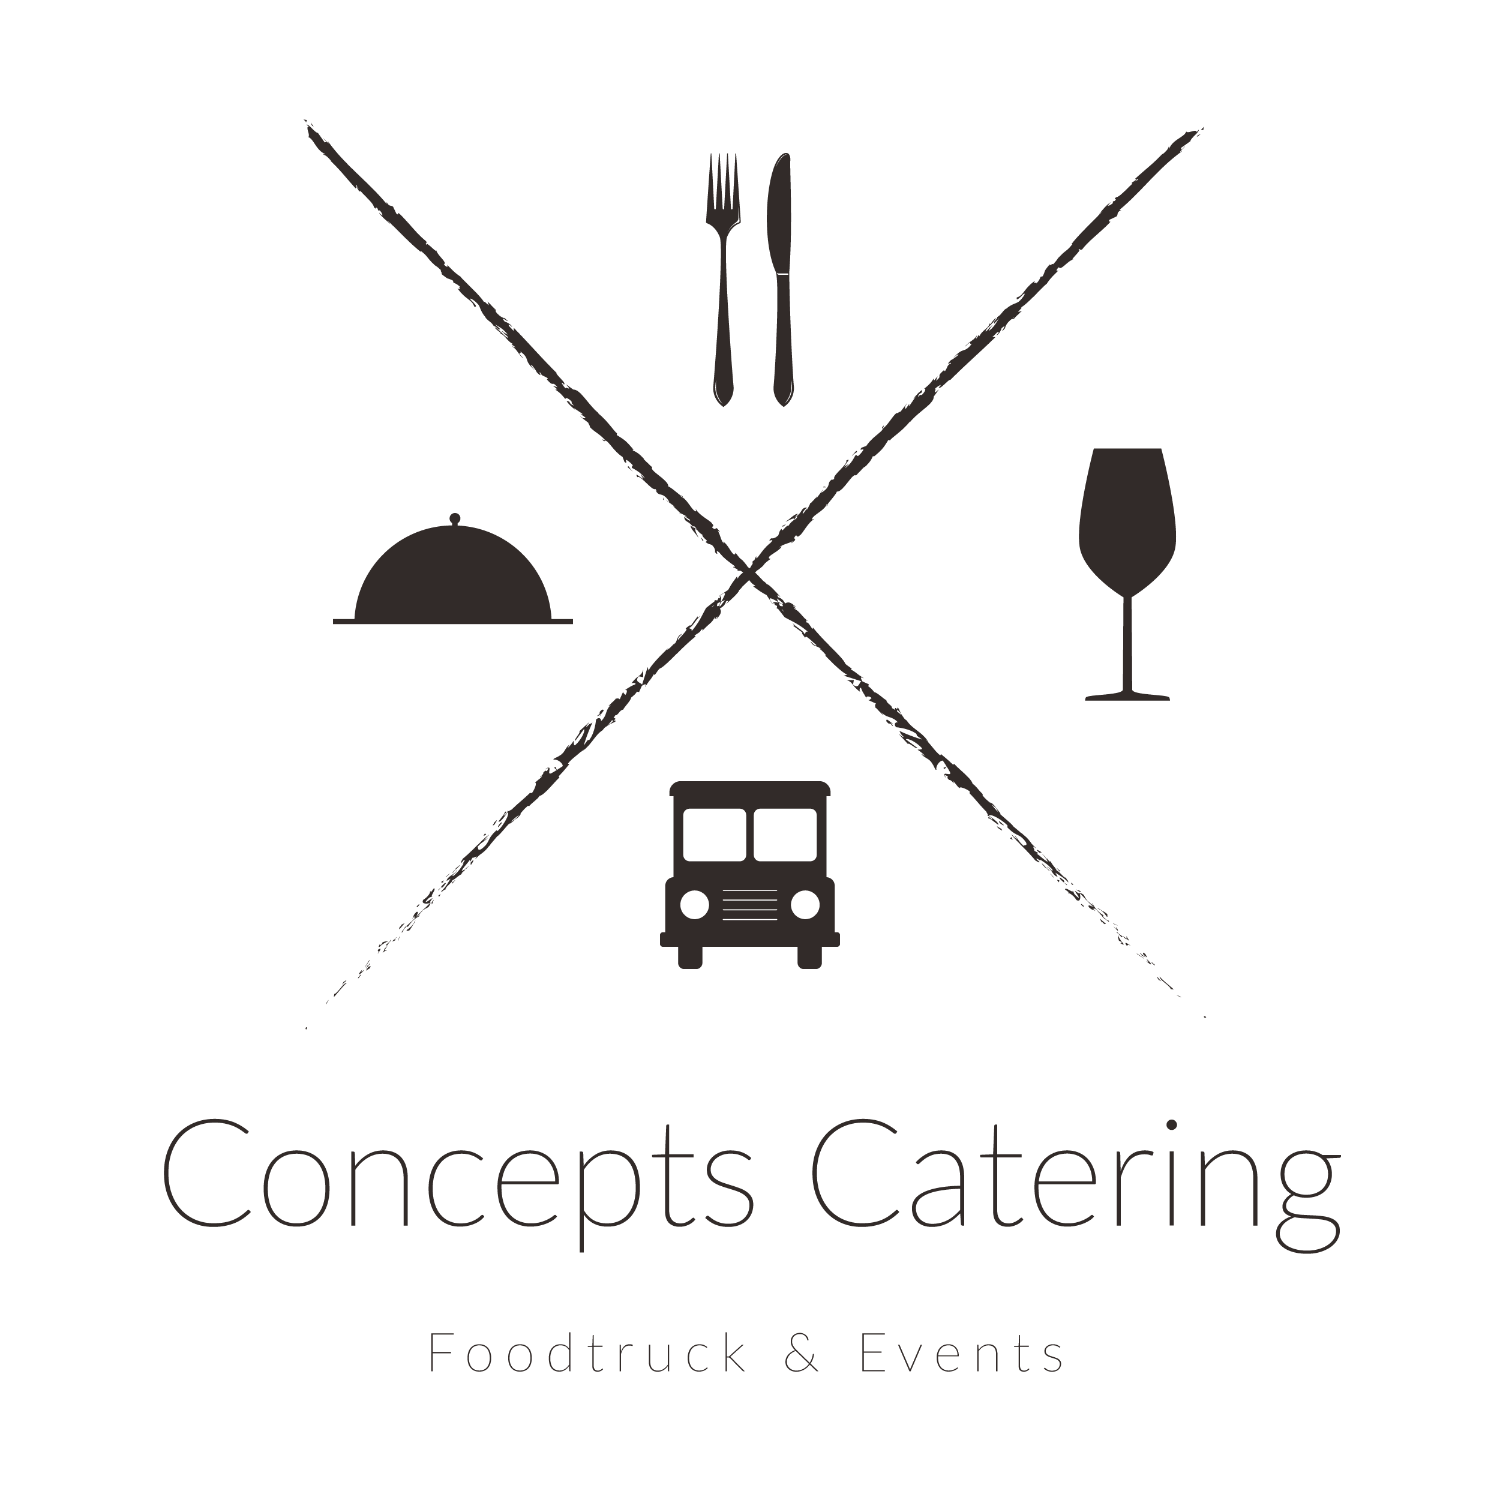 Concepts Catering